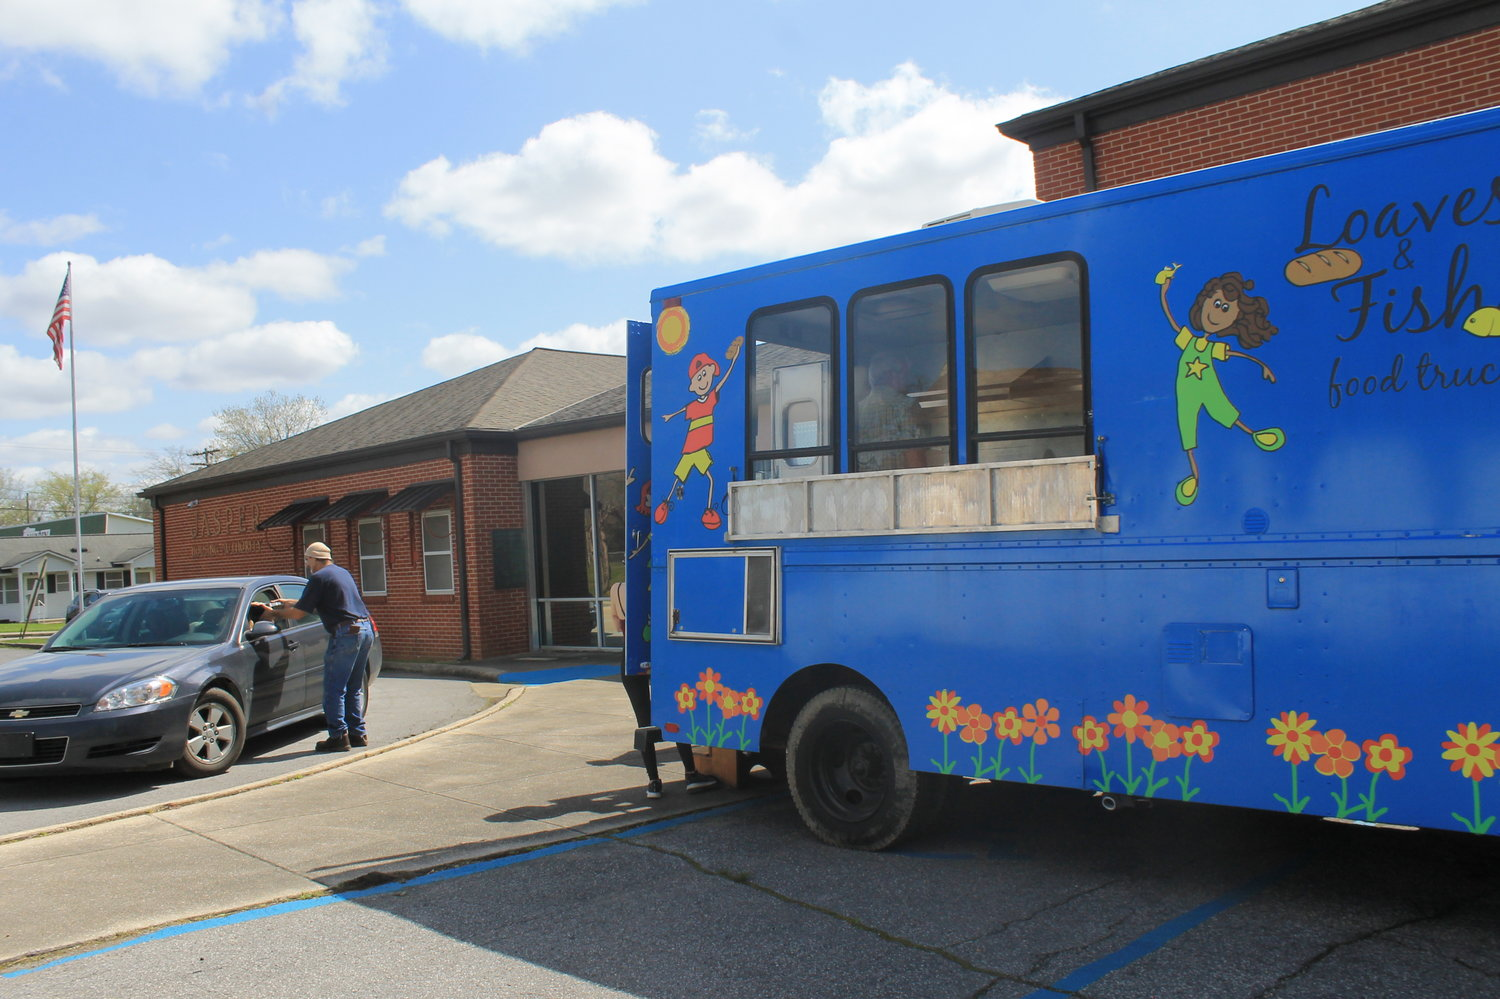 The Hope House Church Loaves & Fish food truck serves meals each Wednesday at the Jasper Housing Authority.